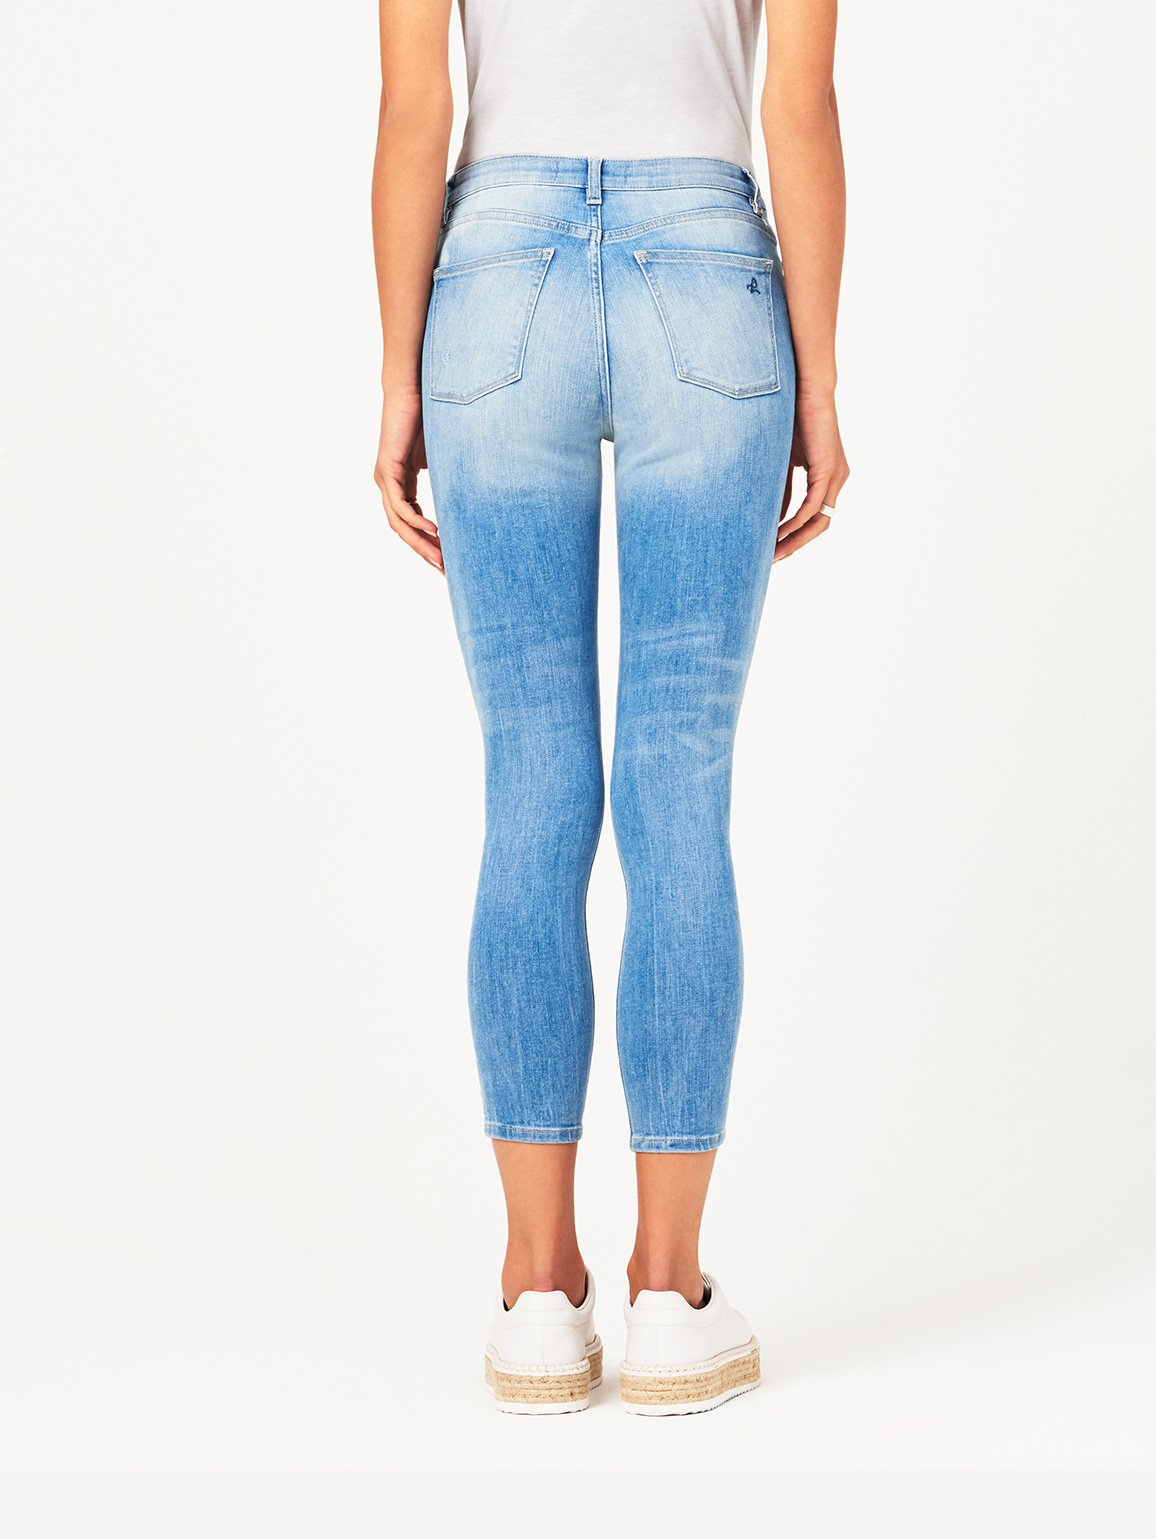 Chrissy Ultra High Rise Skinny | Walker DL 1961 Denim